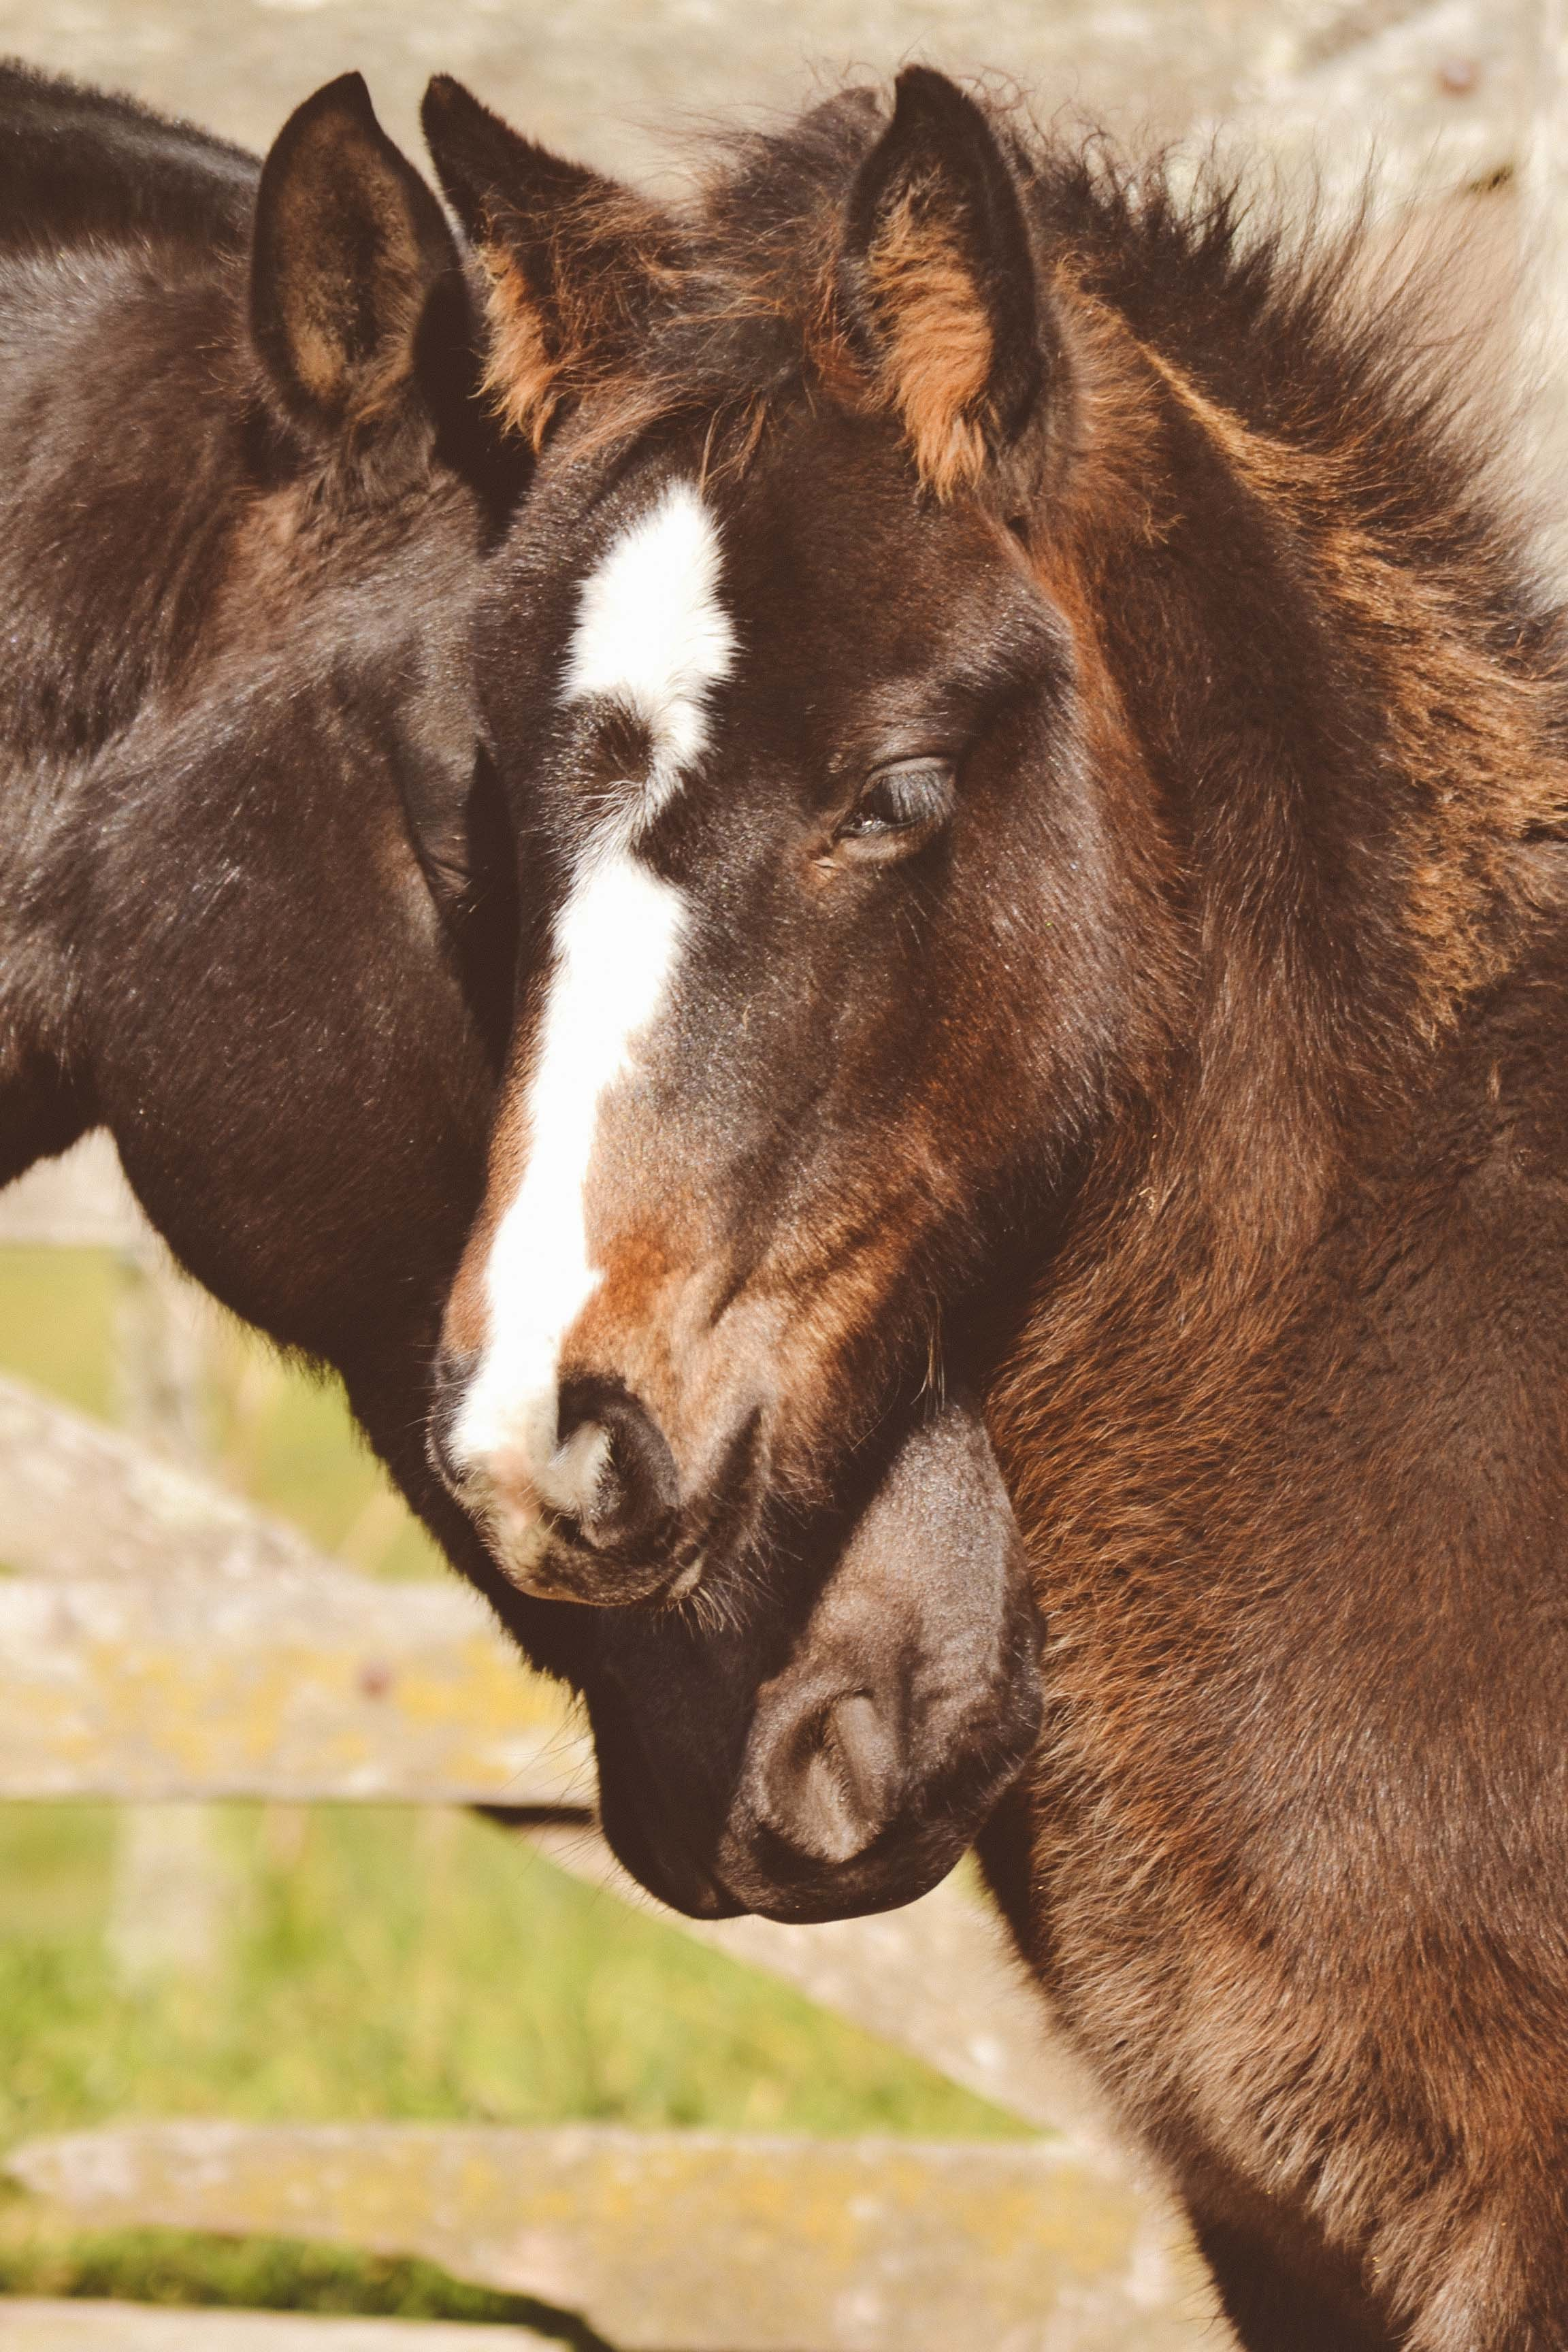 two brown horses' heads